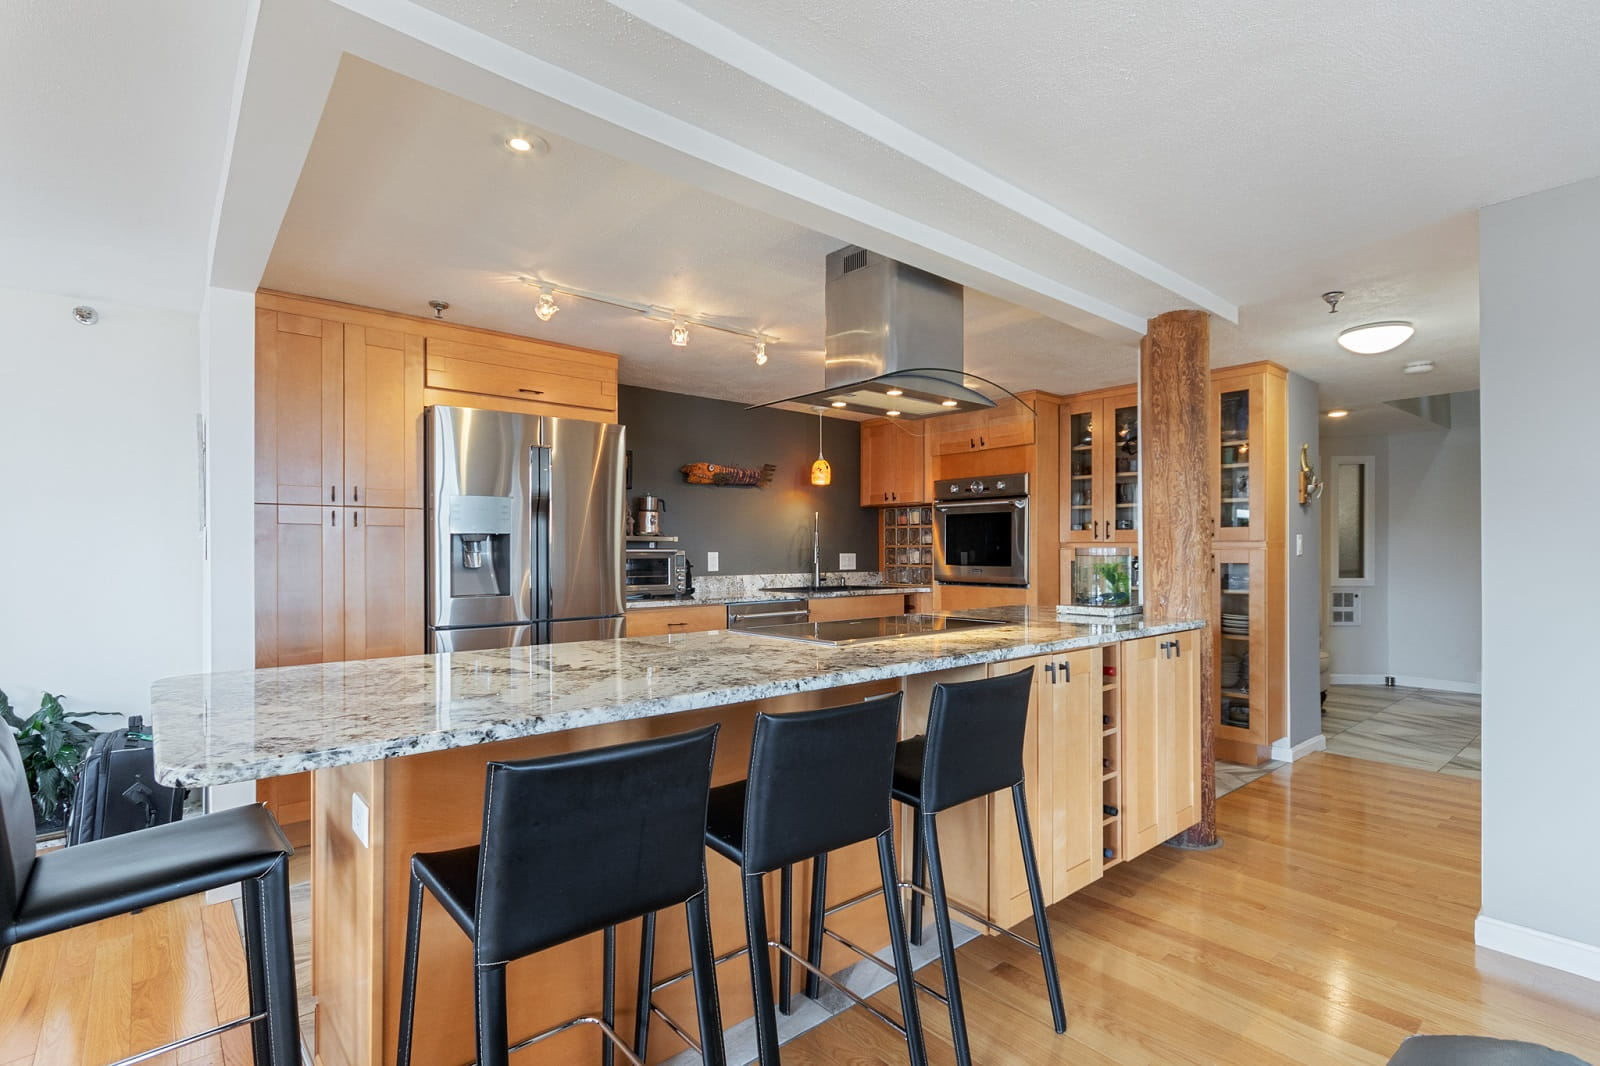 Real Estate Photography in Lowell - MA - USA - Kitchen View